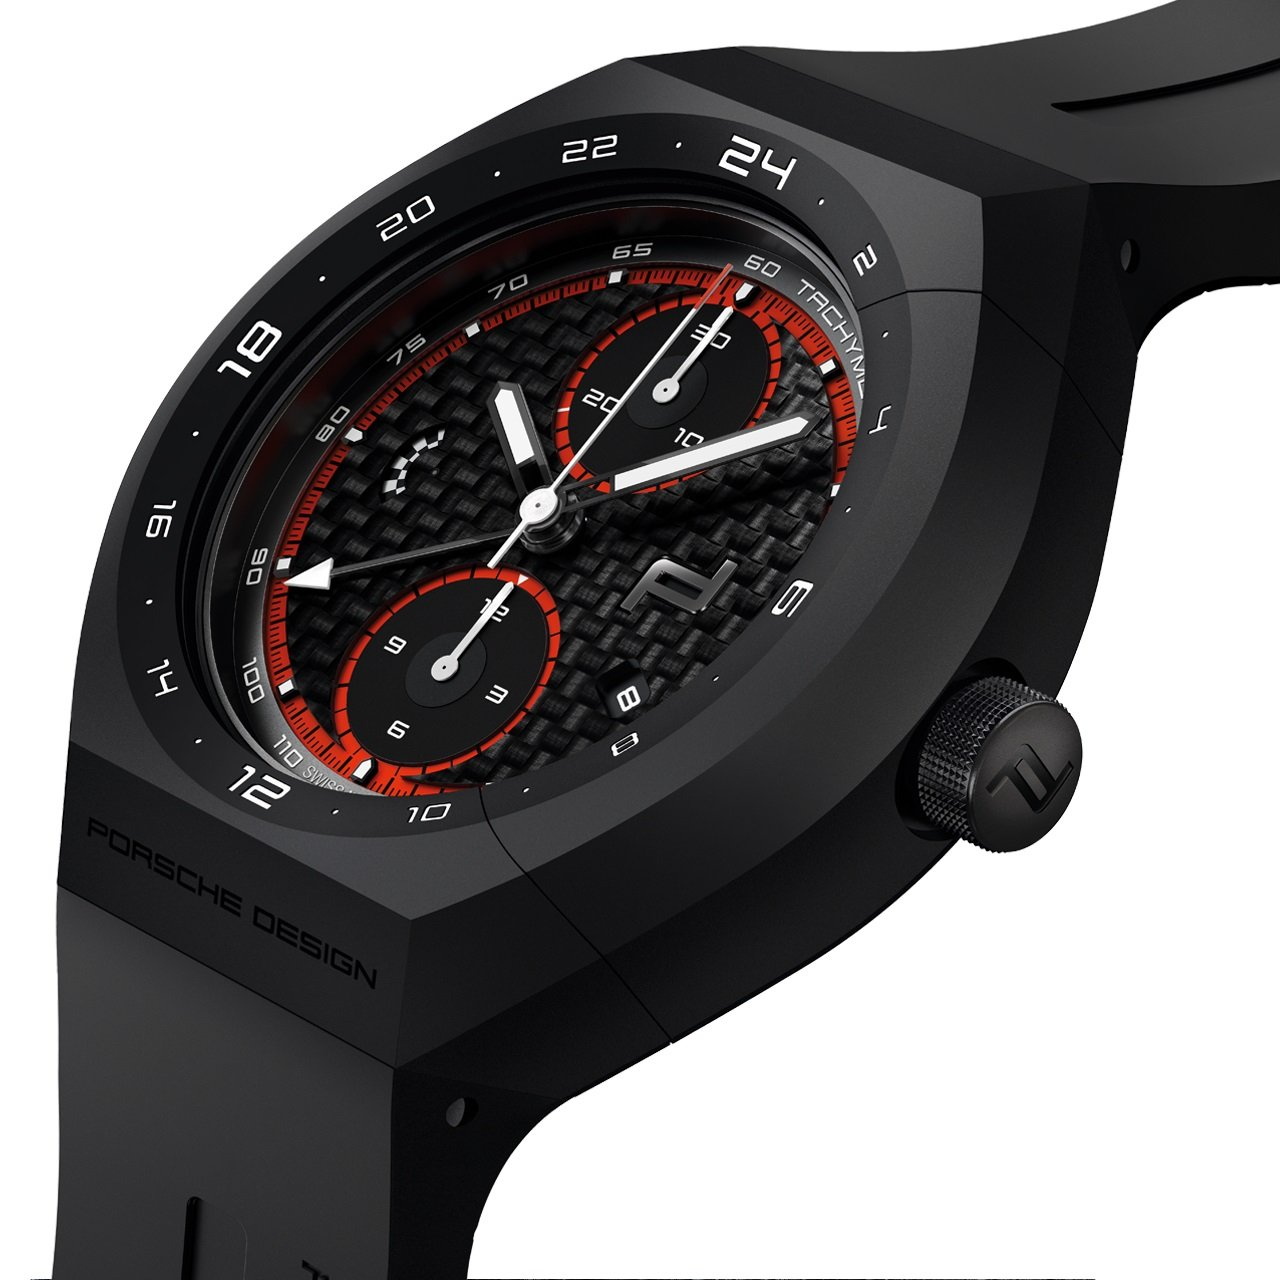 Monobloc Actuator 24H-Chronotimer Limited Edition Watch